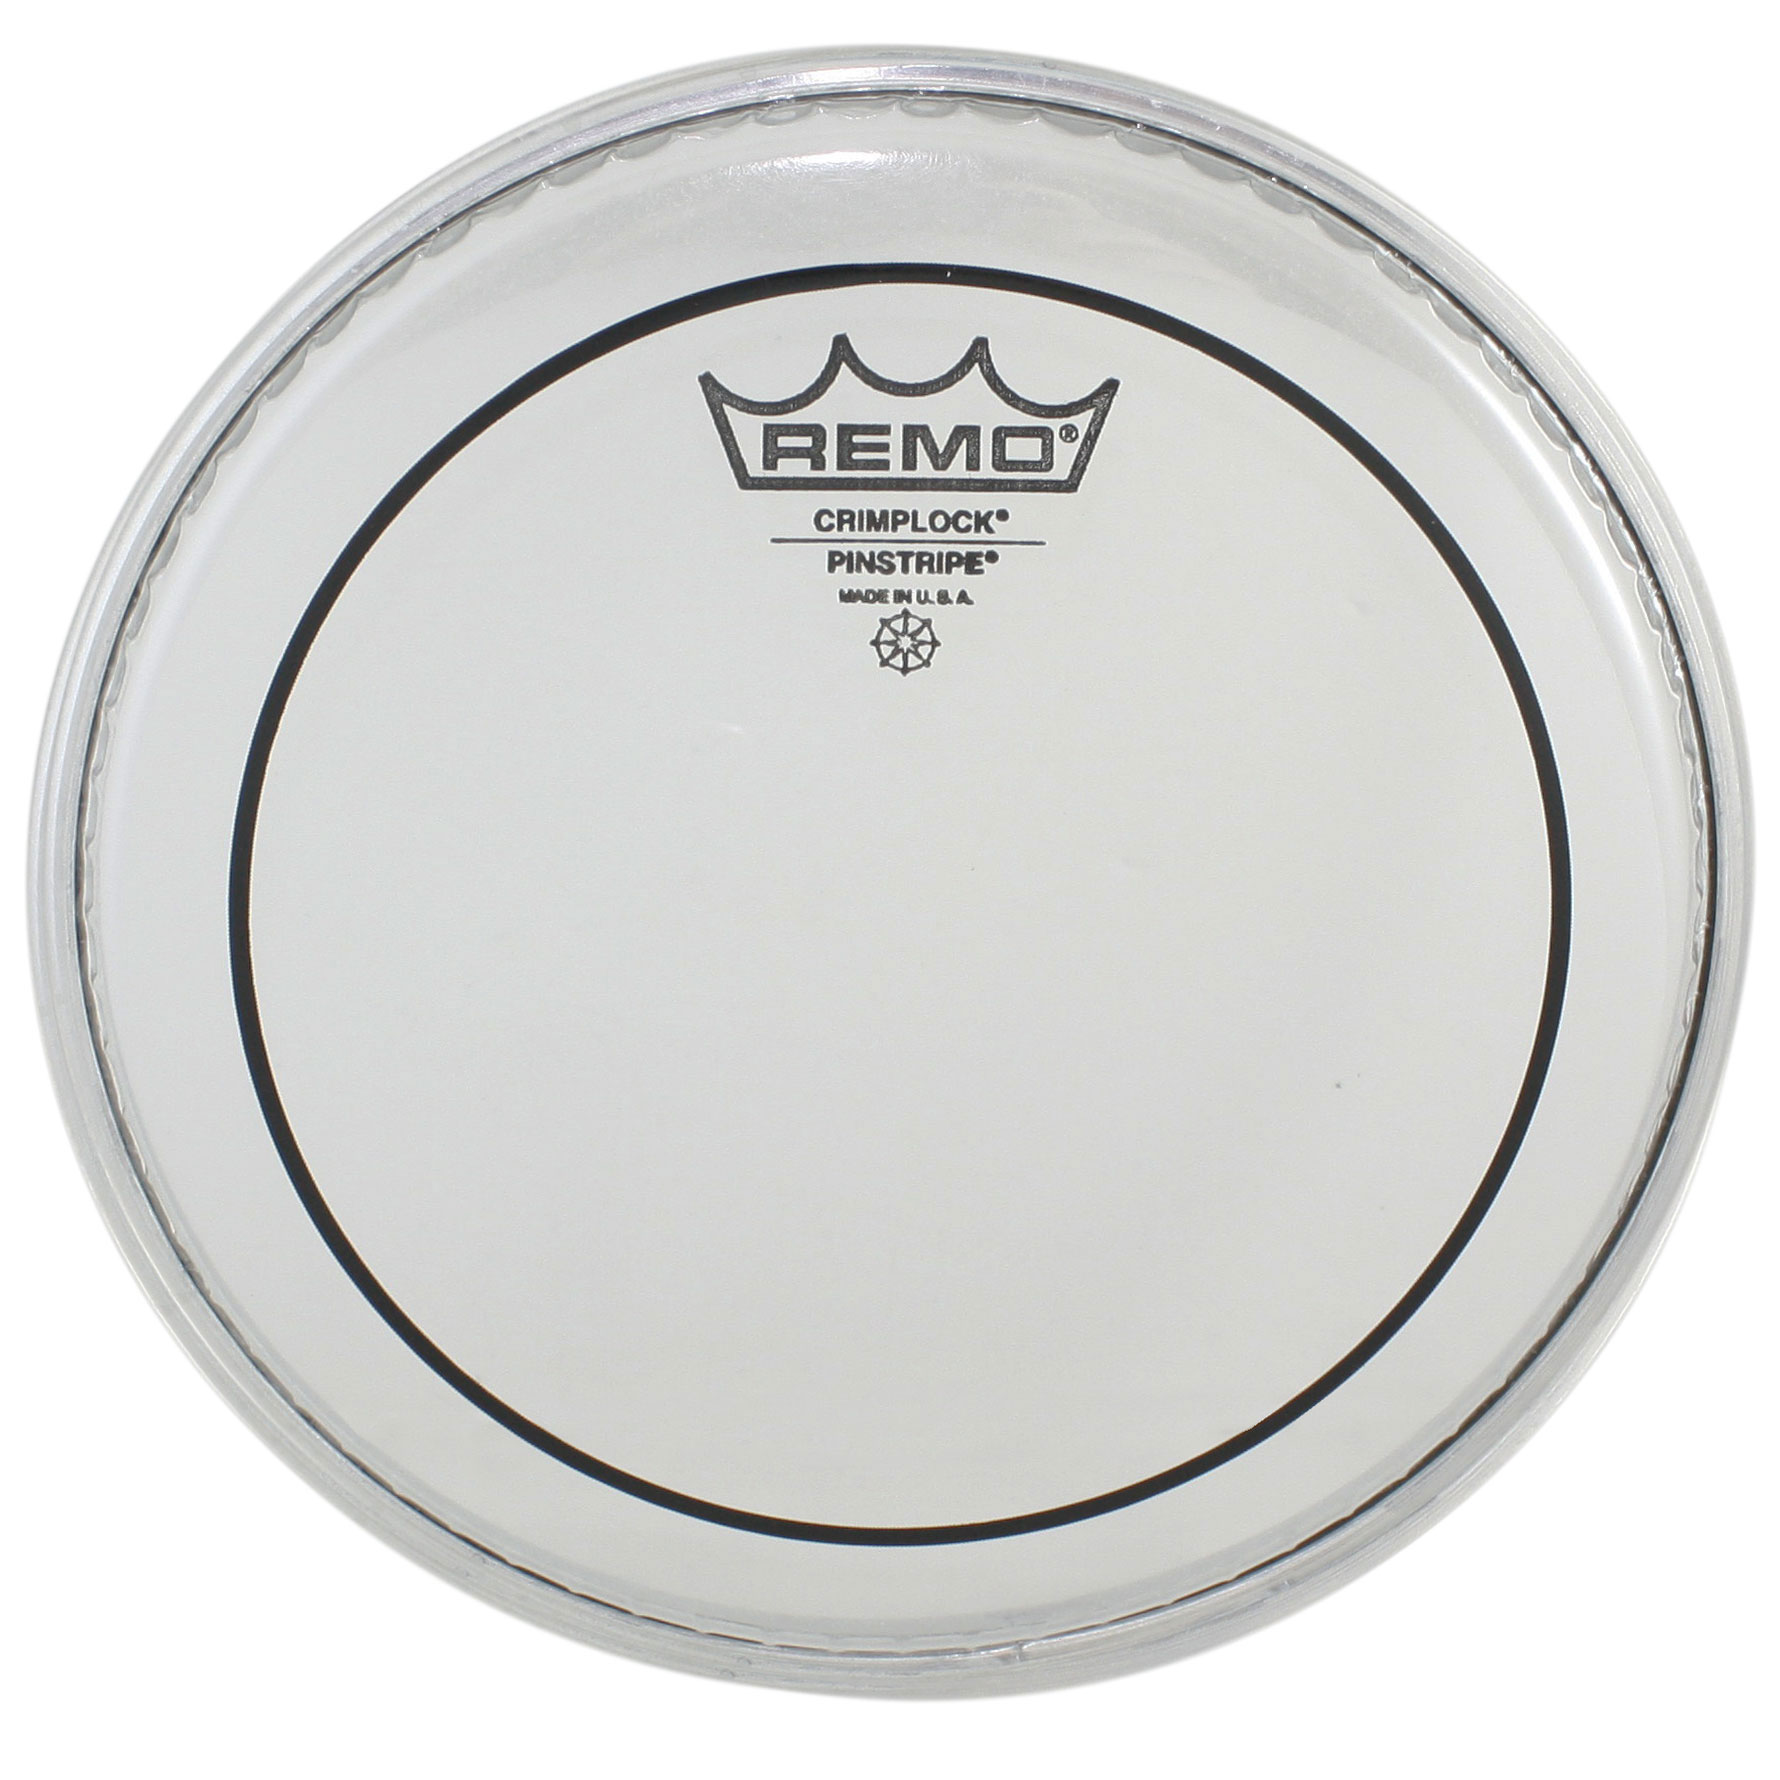 "Remo 8"" Pinstripe Clear Crimplock Marching Tenor Drum Head"